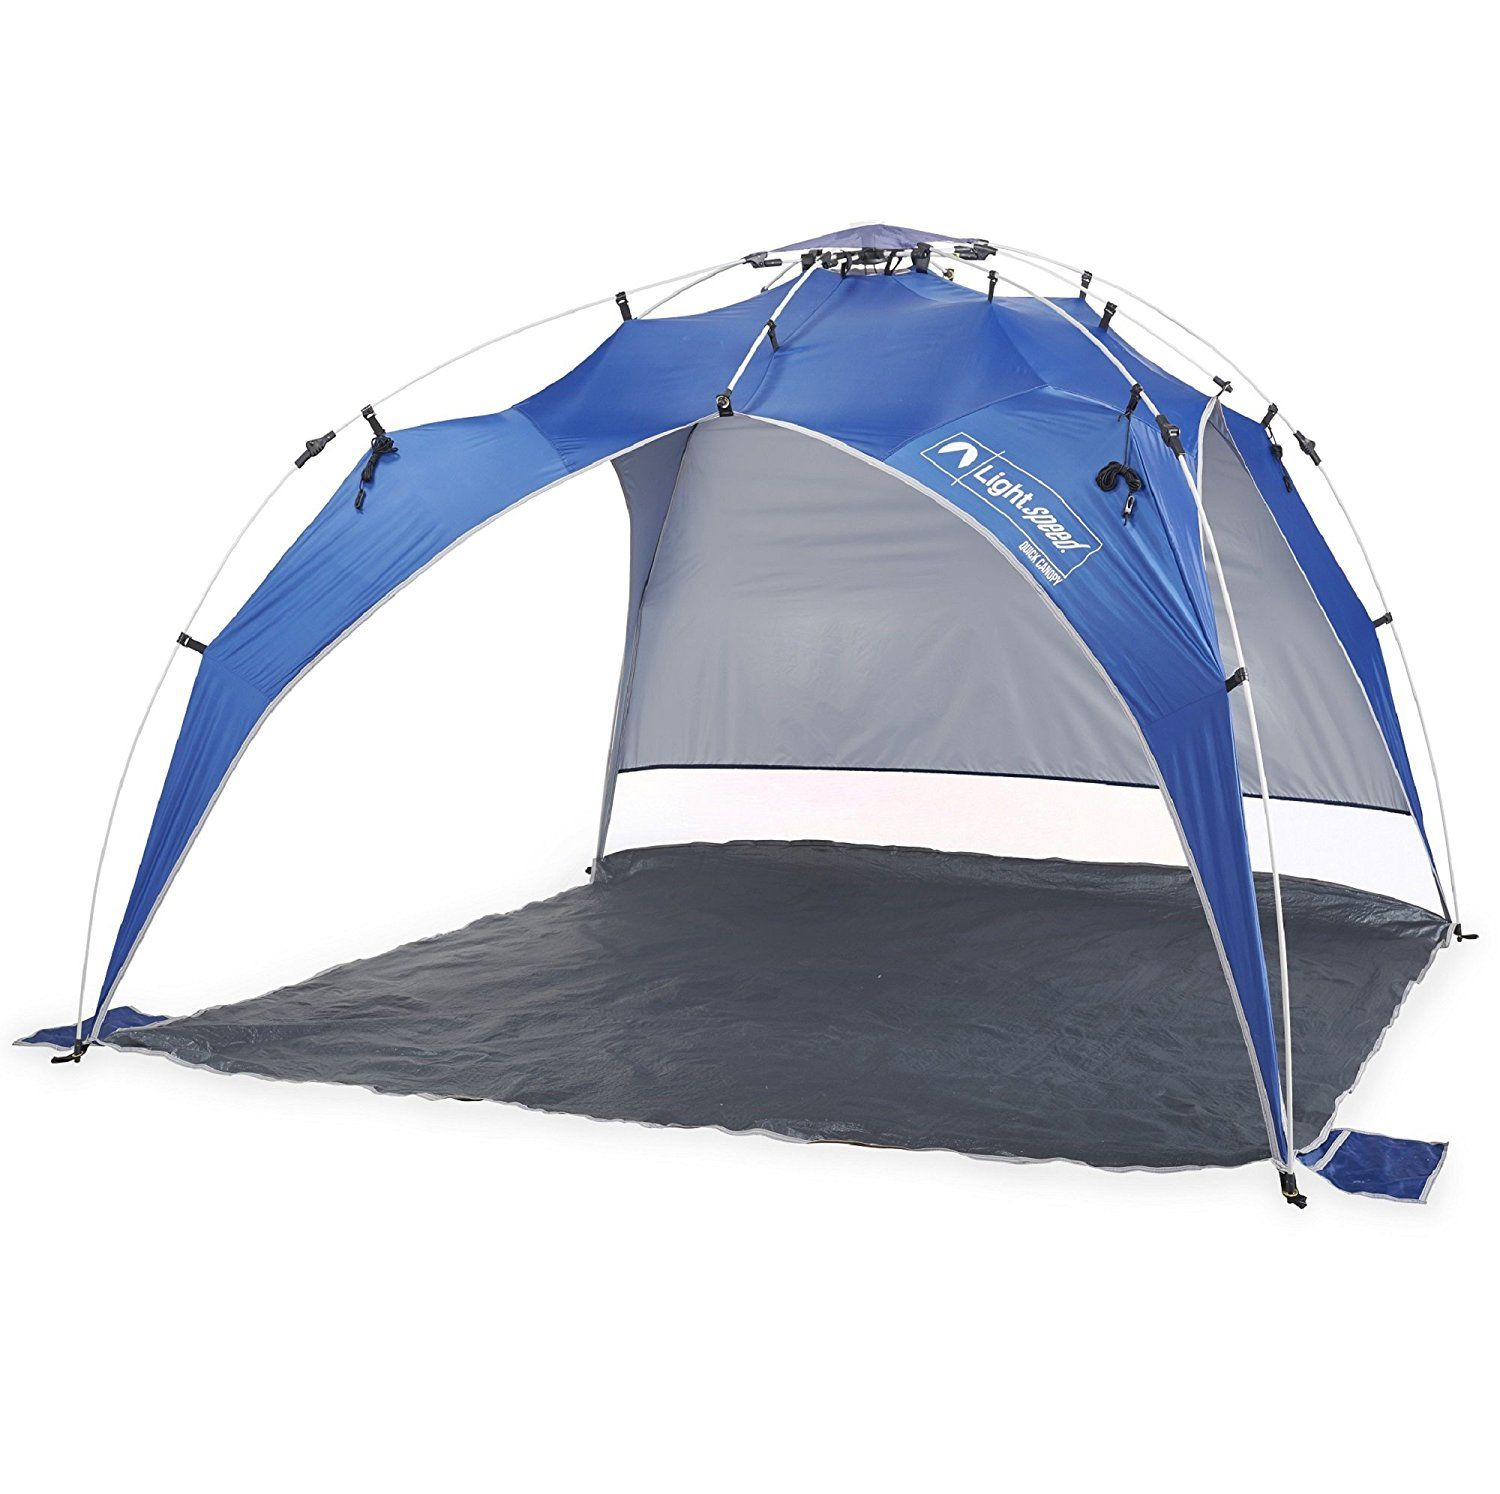 on sale 76f42 7fb73 Lightspeed Outdoors Quick Beach Canopy Tent -- You can get ...